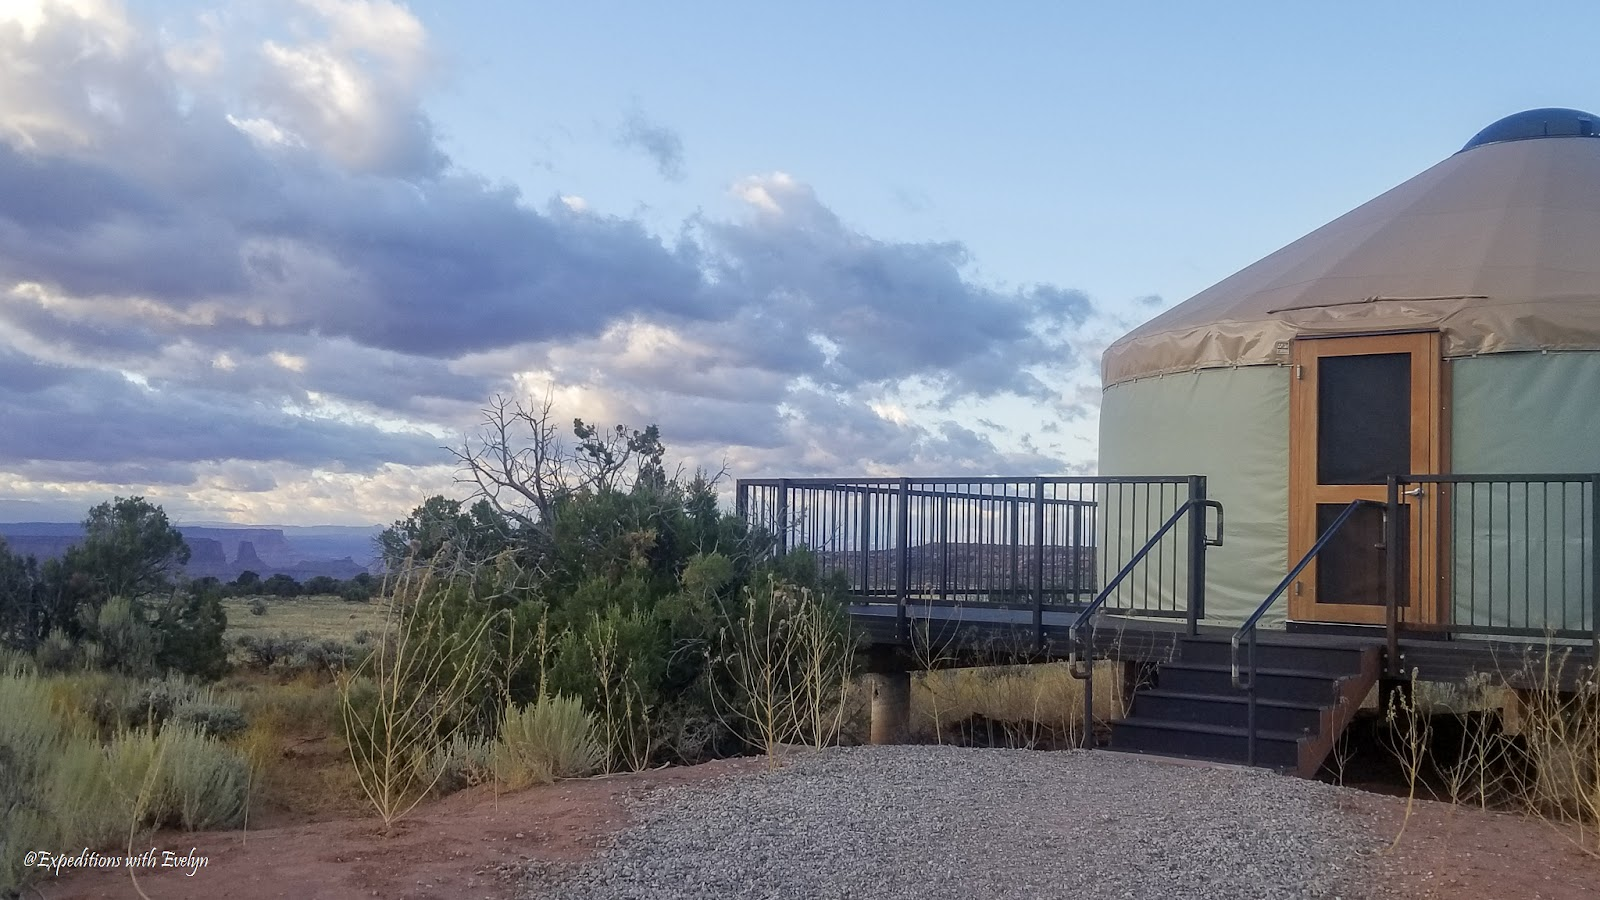 A canvas yurt with a steel porch and stairway overlooks desert plans and a canyon in the distance.